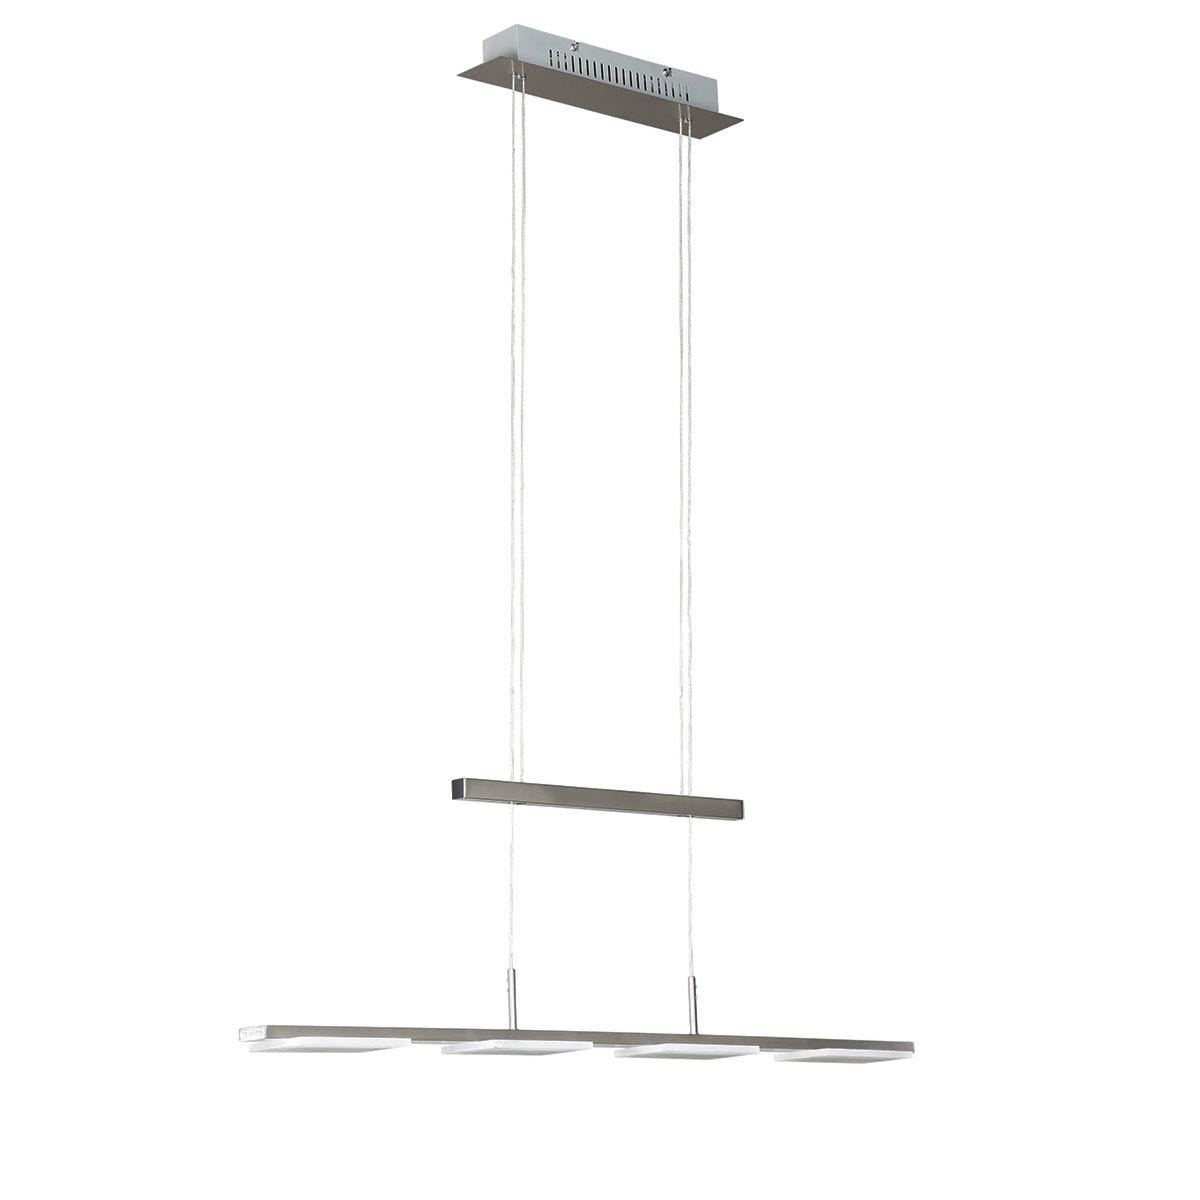 Action Verso 4 LED Lamp Pendant Ceiling Light With Counterweight - Nickel Matt Finish